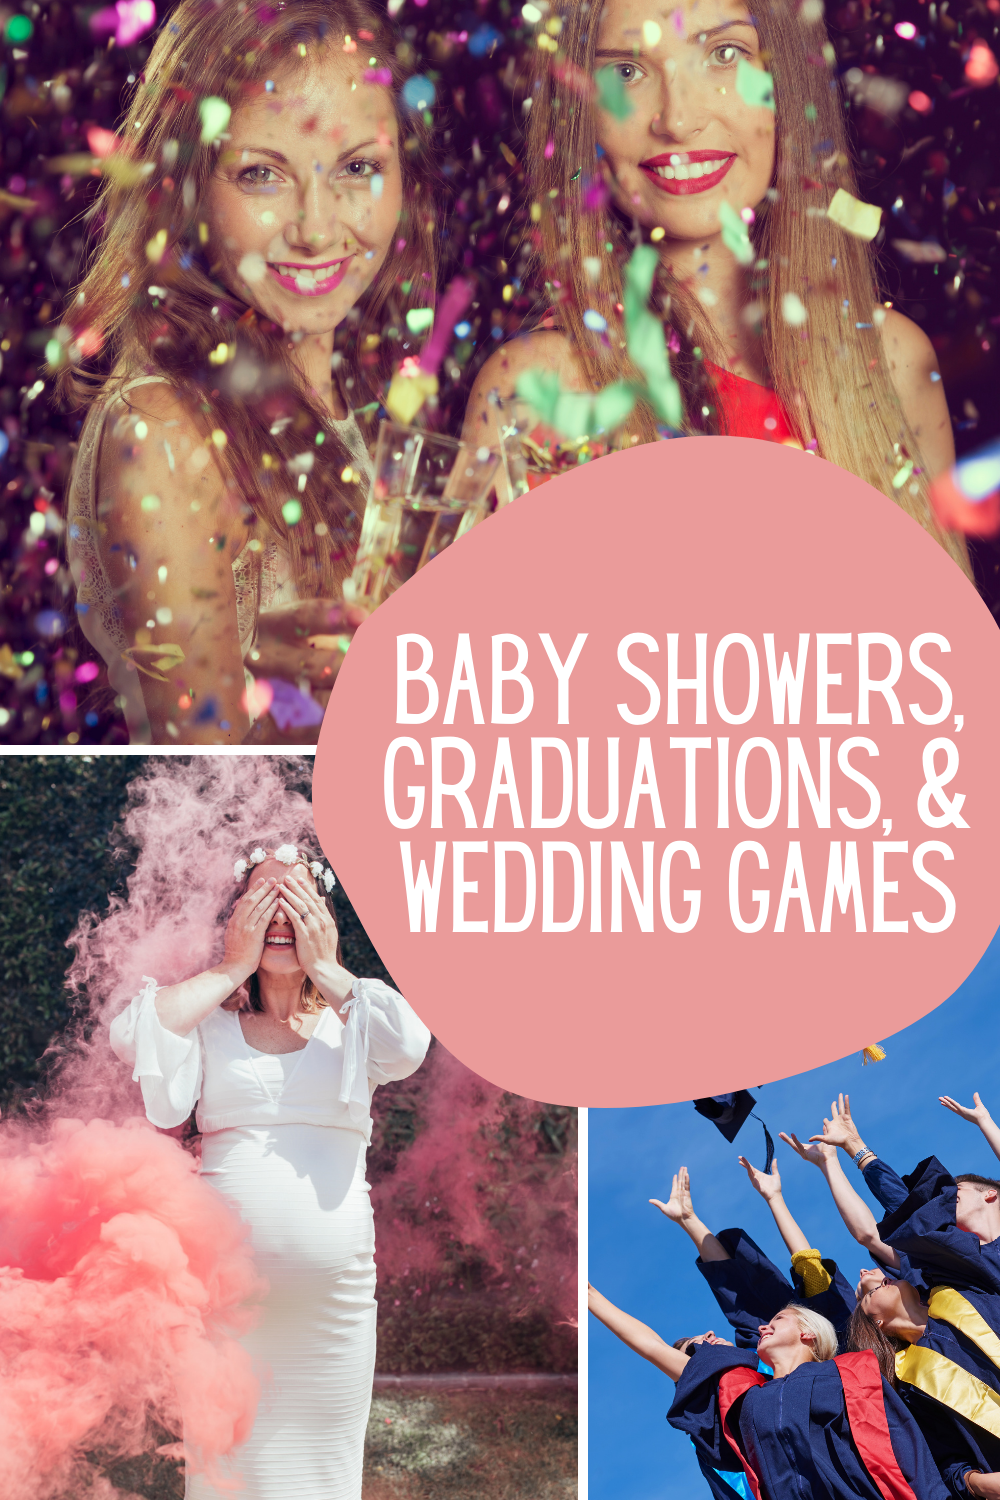 Baby Shower and Wedding Games